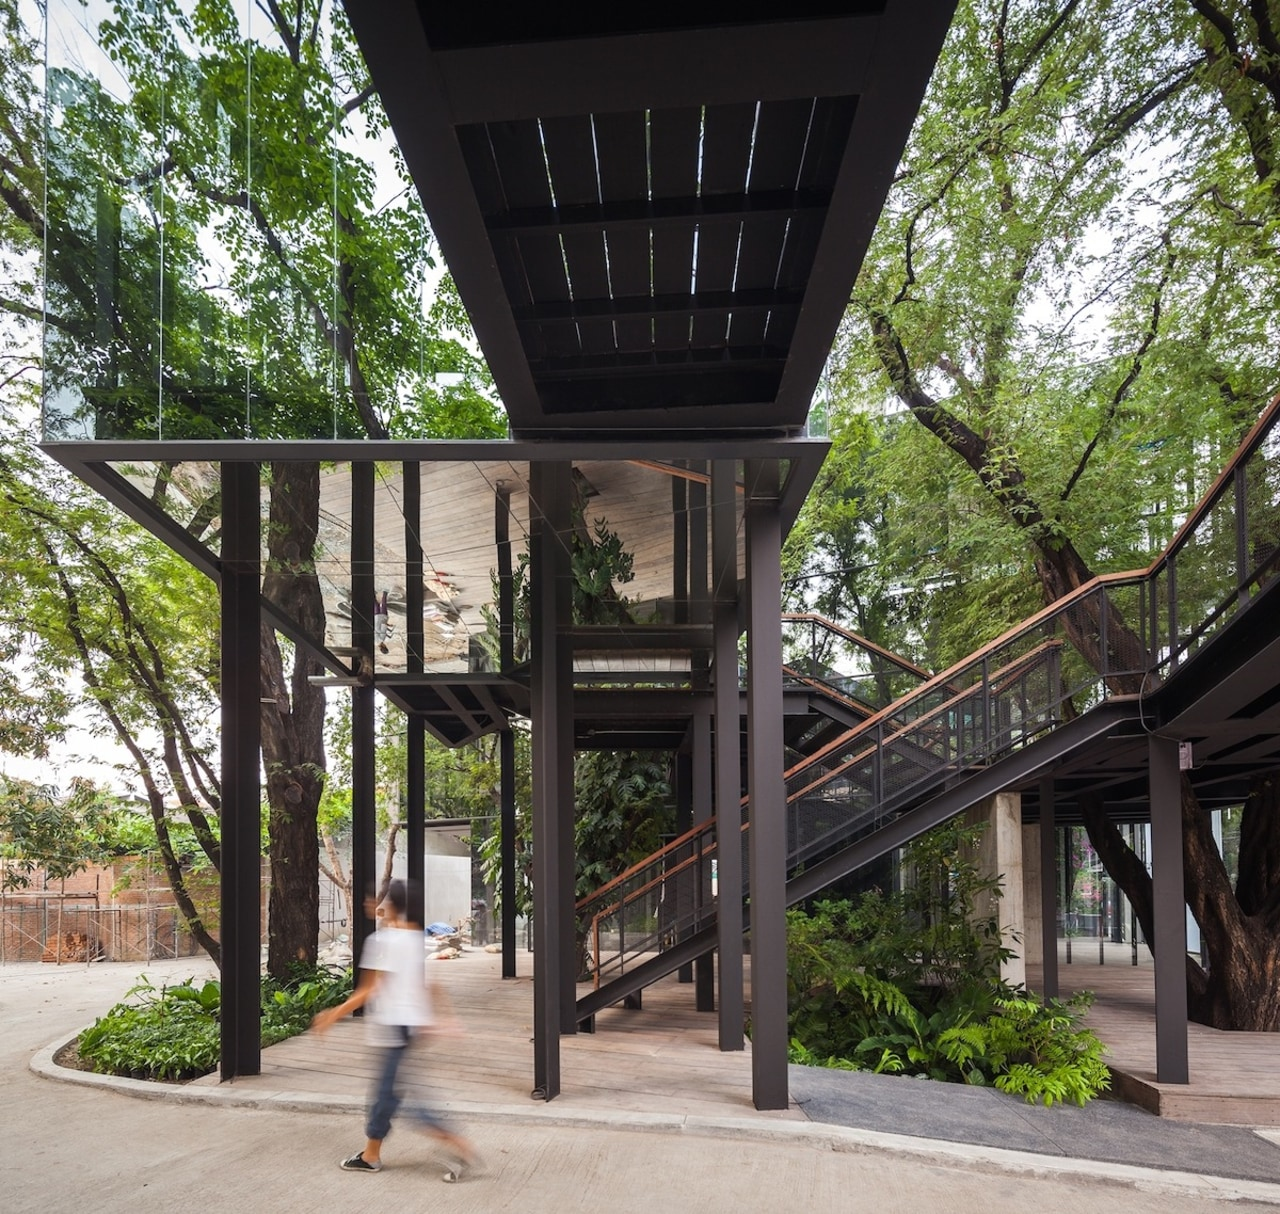 The main tree courtyard is a free and architecture, iron, structure, tree, black